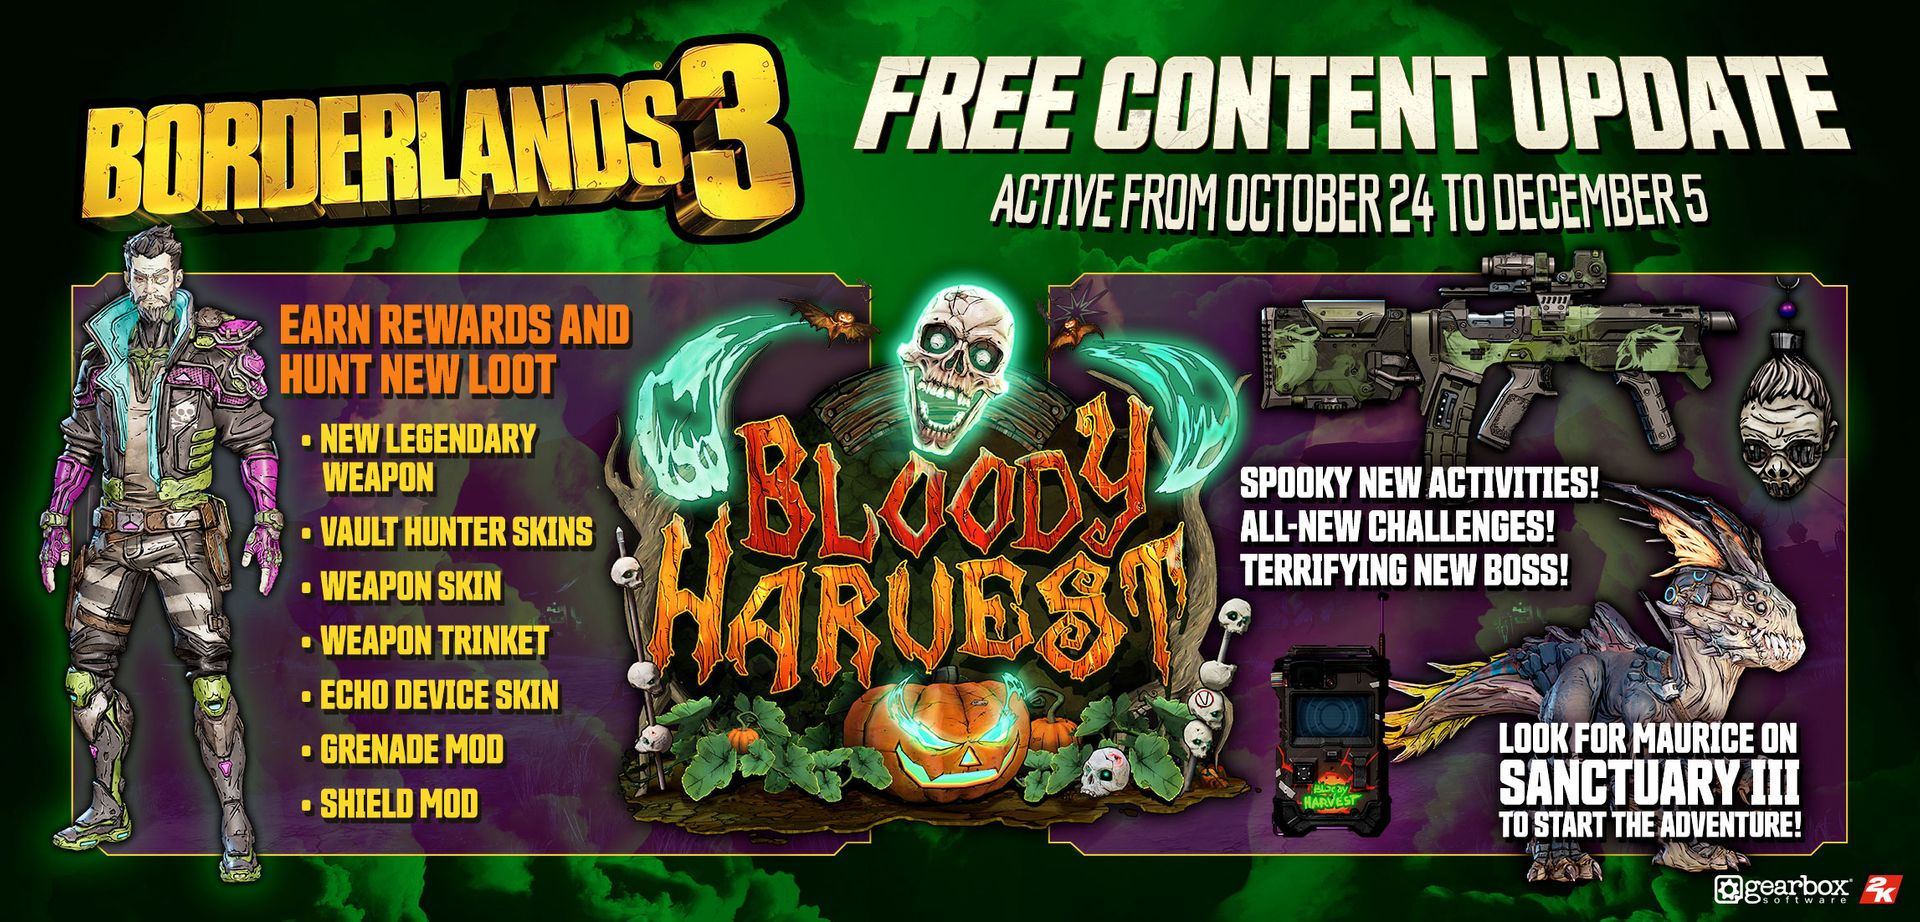 Borderlands 3 halloween event start date and time